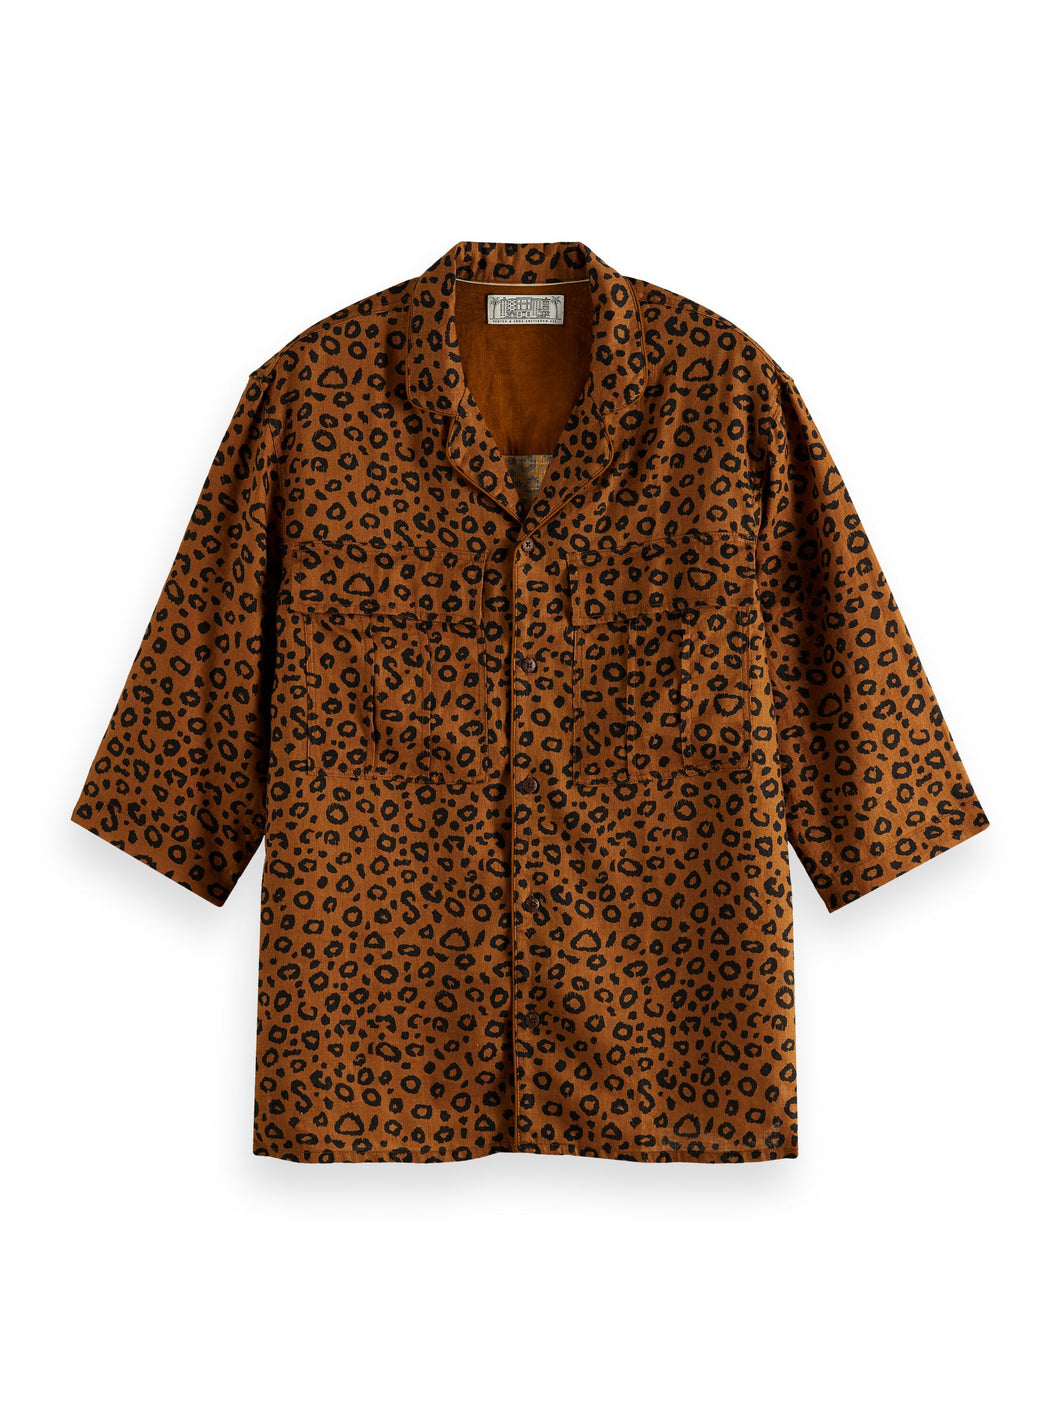 Scotch & Soda Printed Short Sleeve Shirt